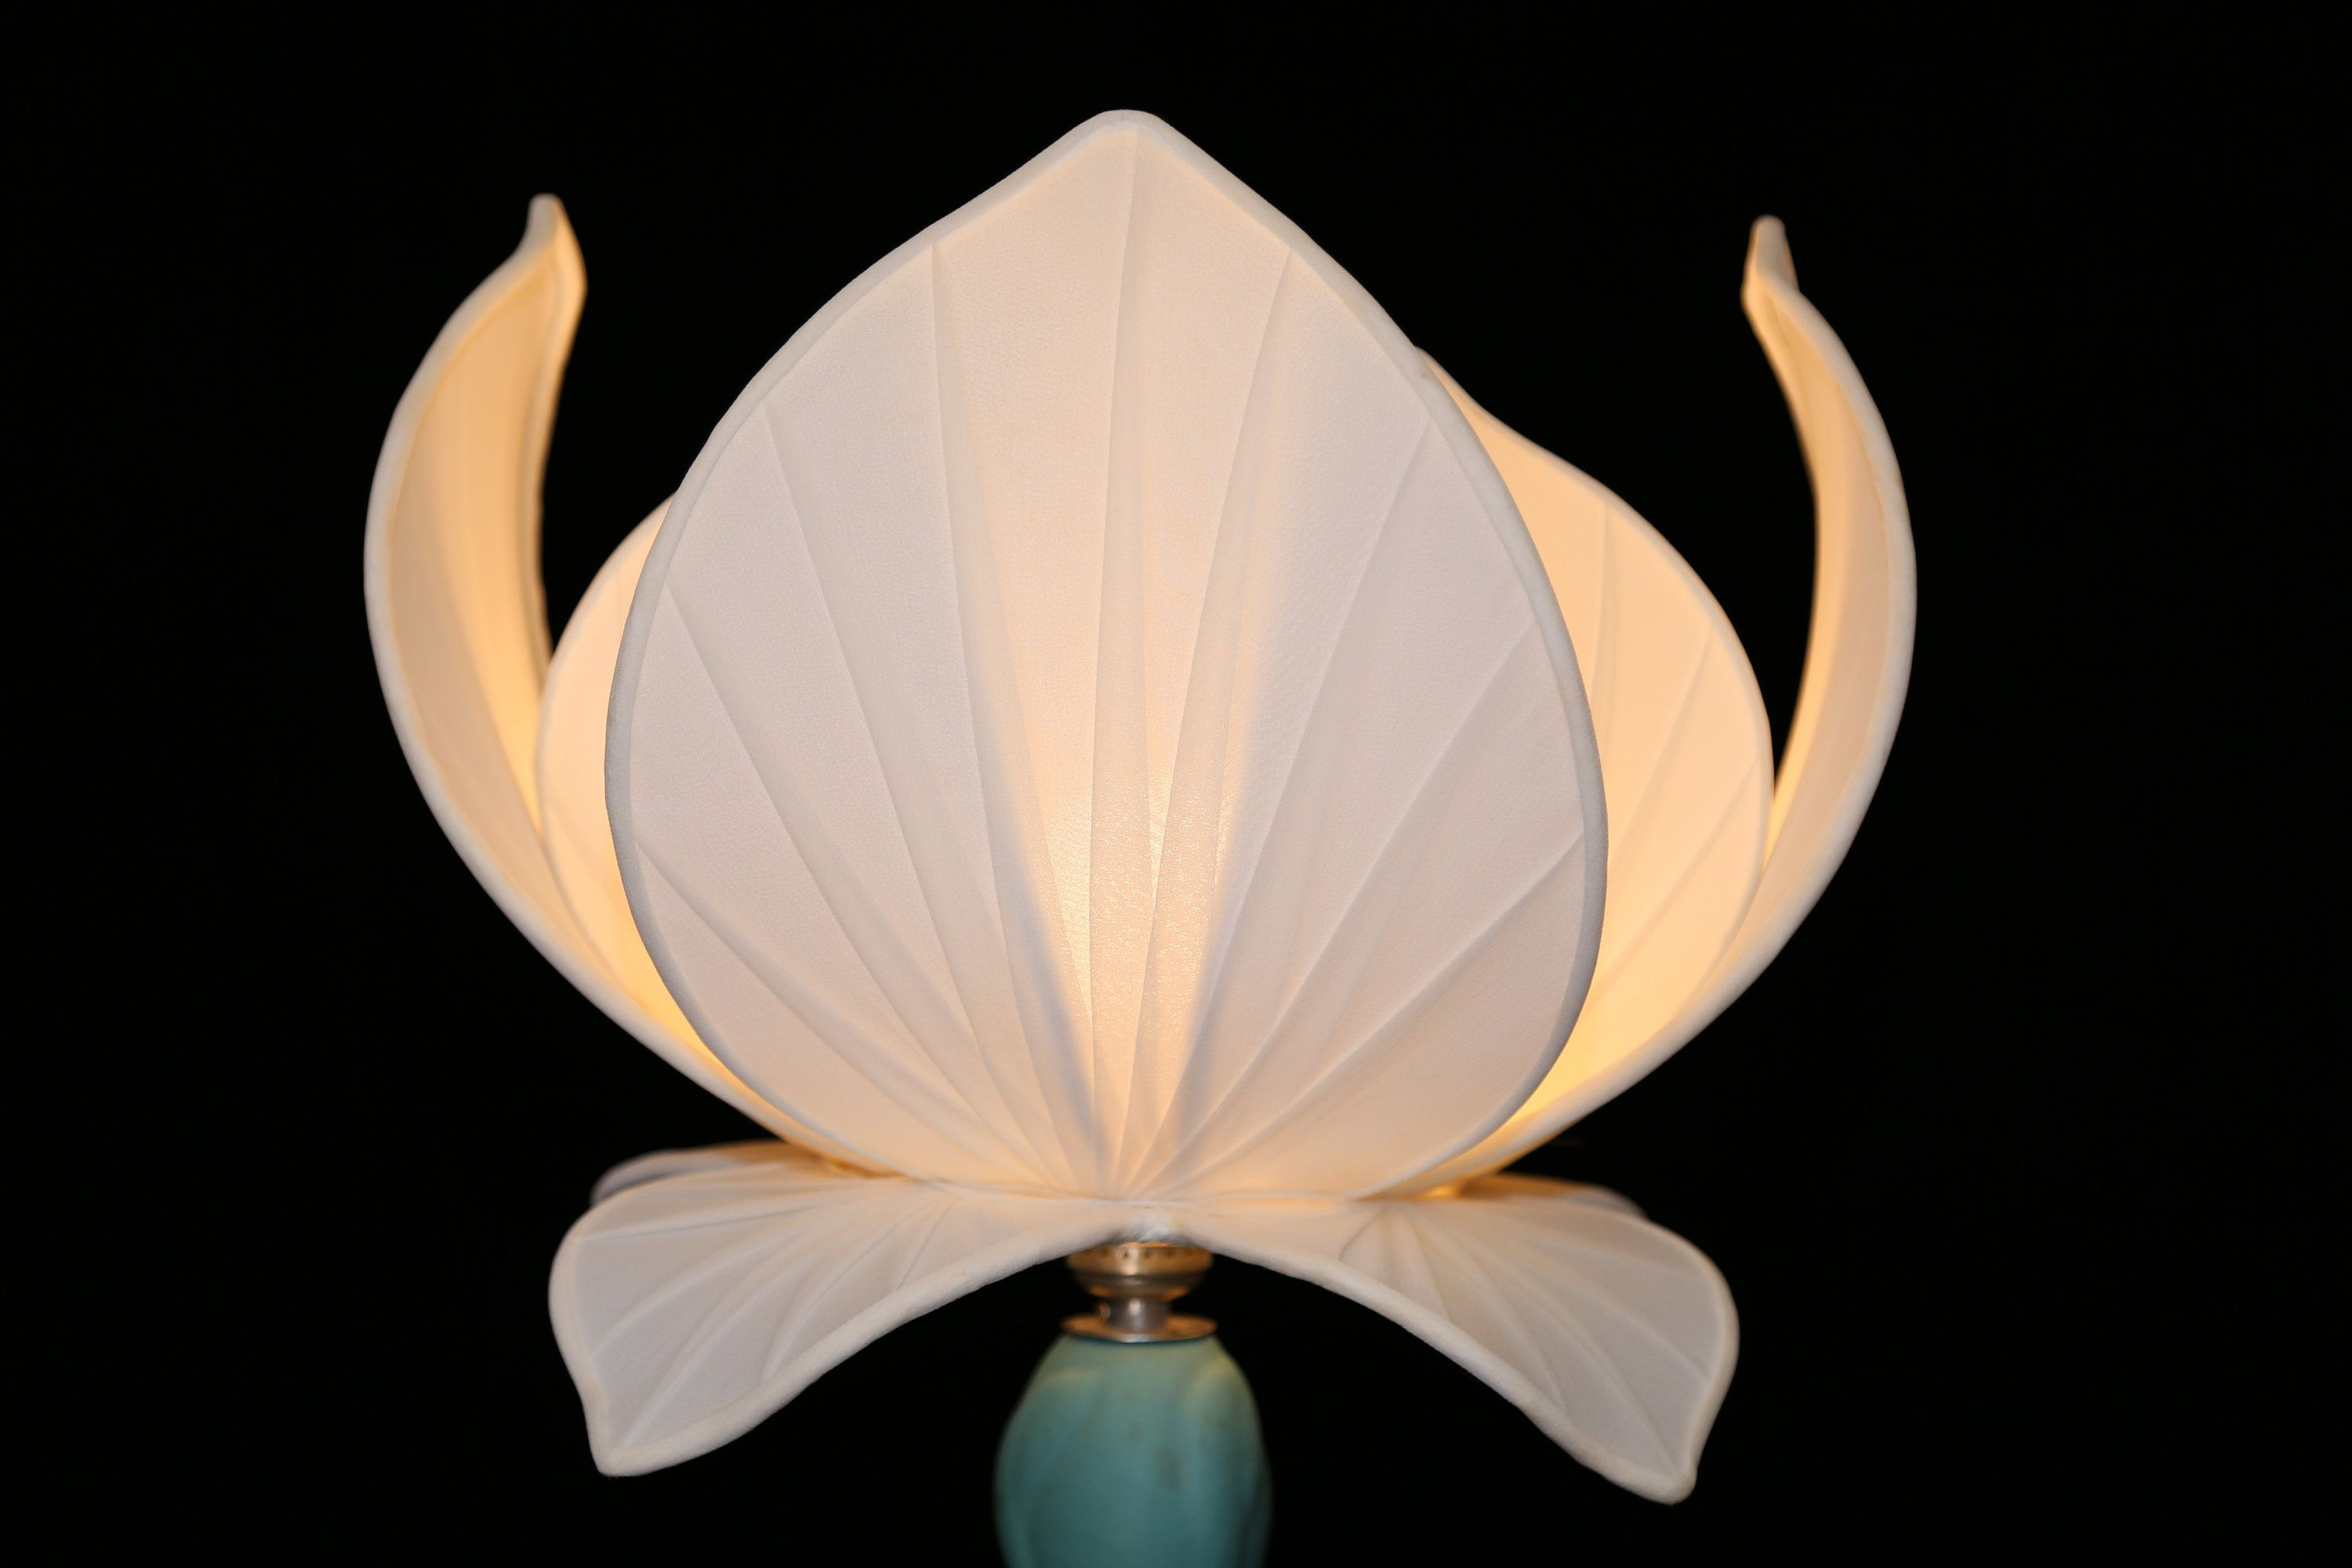 Vintage lotus flower lampshade authentic white fabric lotus lamp etsy your place to buy and sell all things handmade vintage lotus flower lampshade aloadofball Choice Image